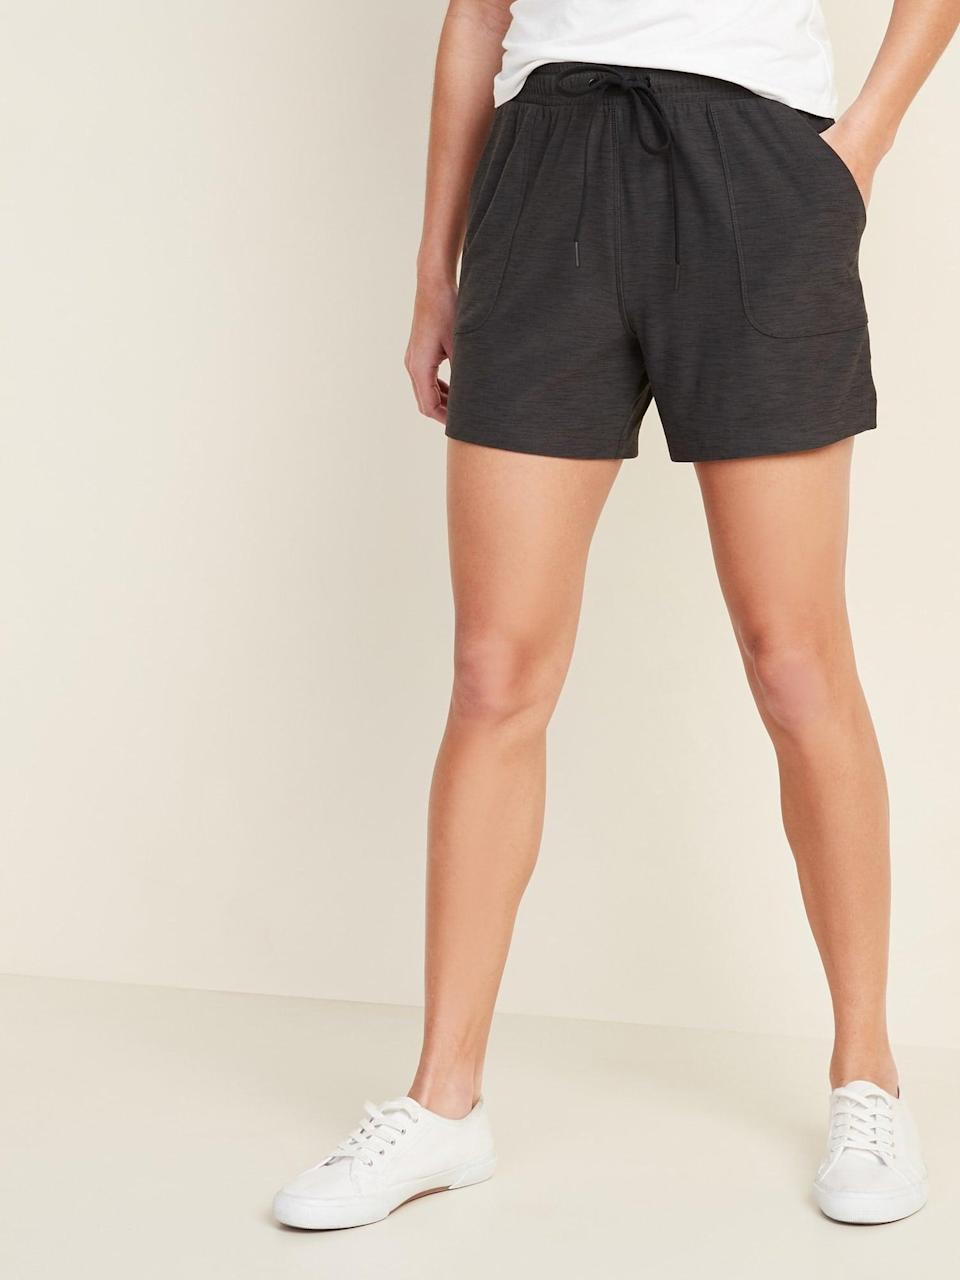 "<p>You can't go wrong with these <a href=""https://www.popsugar.com/buy/Old-Navy-Breathe-Utility-Pocket-Shorts-582879?p_name=Old%20Navy%20Breathe%20ON%20Utility-Pocket%20Shorts&retailer=oldnavy.gap.com&pid=582879&price=22&evar1=fit%3Auk&evar9=46472938&evar98=https%3A%2F%2Fwww.popsugar.com%2Ffitness%2Fphoto-gallery%2F46472938%2Fimage%2F47590551%2FOld-Navy-Breathe-ON-Utility-Pocket-Shorts&list1=shopping%2Cworkout%20clothes%2Cfitness%20gear%2Cproducts%20under%20%2450%2C50%20under%20%2450%2Cfitness%20shopping%2Caffordable%20shopping&prop13=api&pdata=1"" class=""link rapid-noclick-resp"" rel=""nofollow noopener"" target=""_blank"" data-ylk=""slk:Old Navy Breathe ON Utility-Pocket Shorts"">Old Navy Breathe ON Utility-Pocket Shorts</a> ($22, originally $25).</p>"